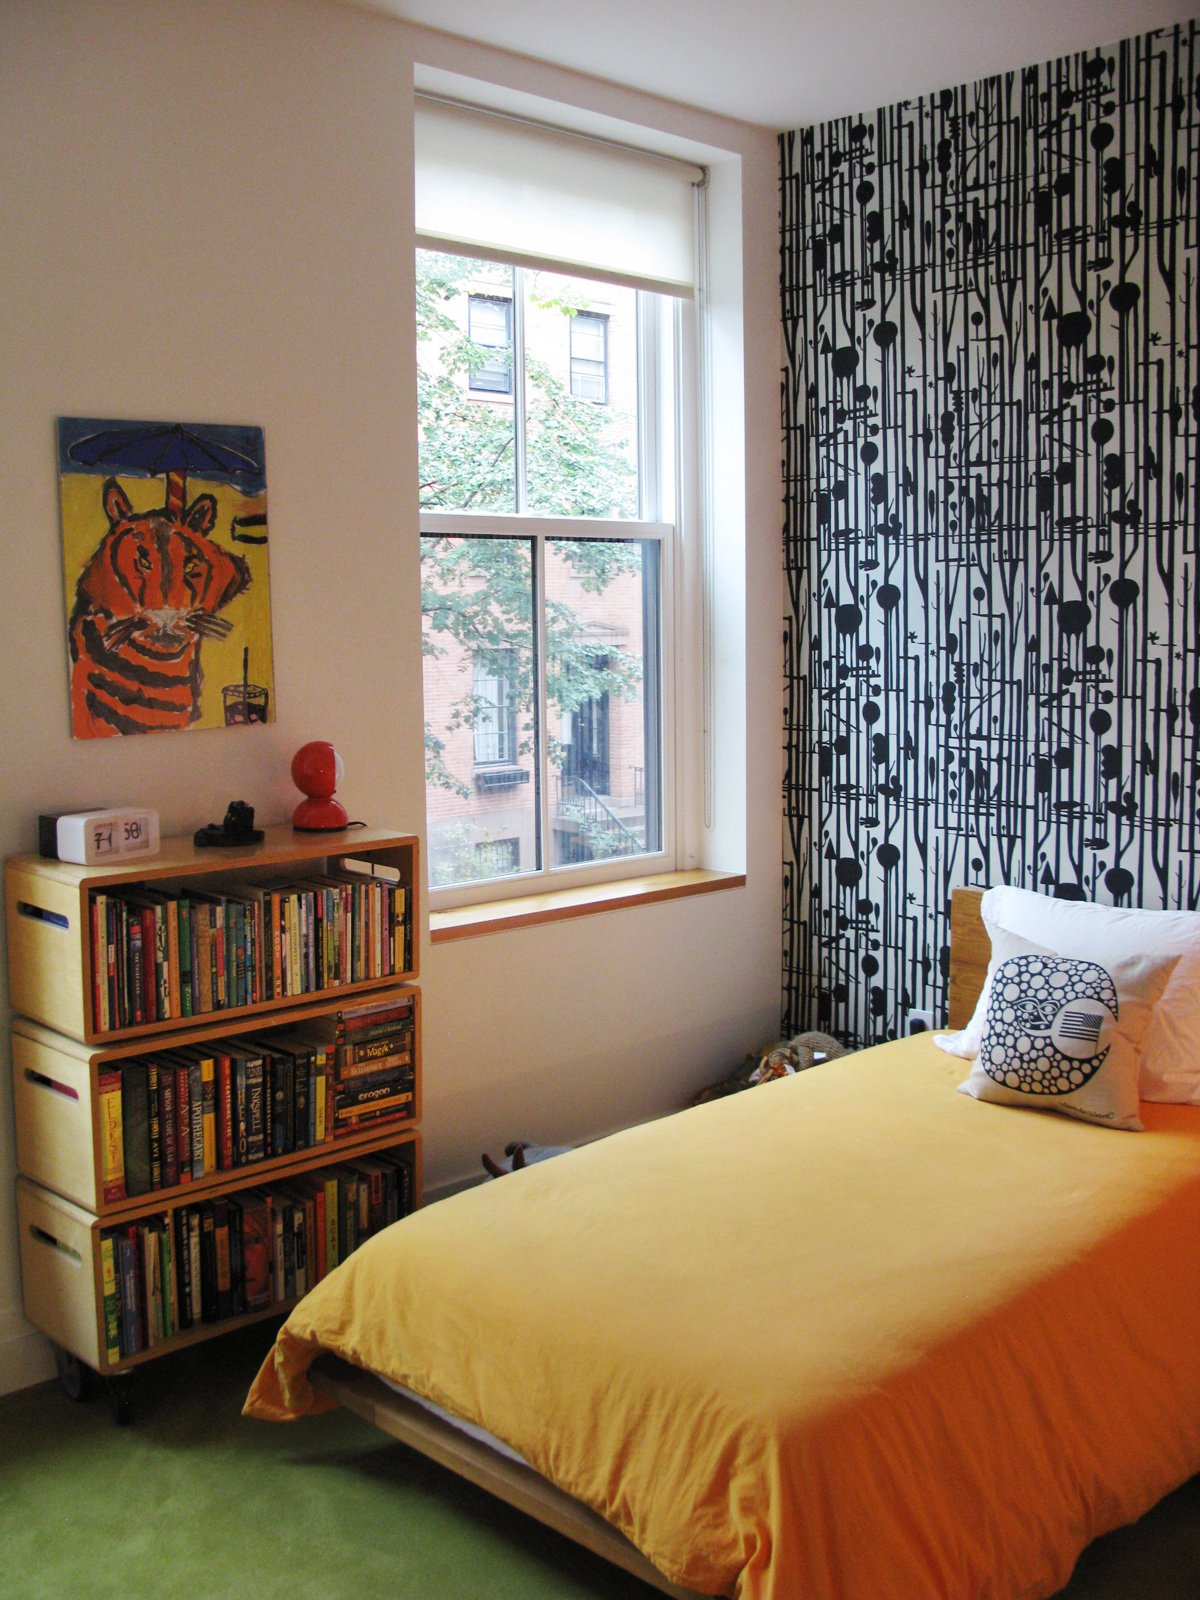 The children's bedroom features bright carpeting and patterned wallpaper.  Photo 26 of 42 in Wallpaper That Fixes Walls